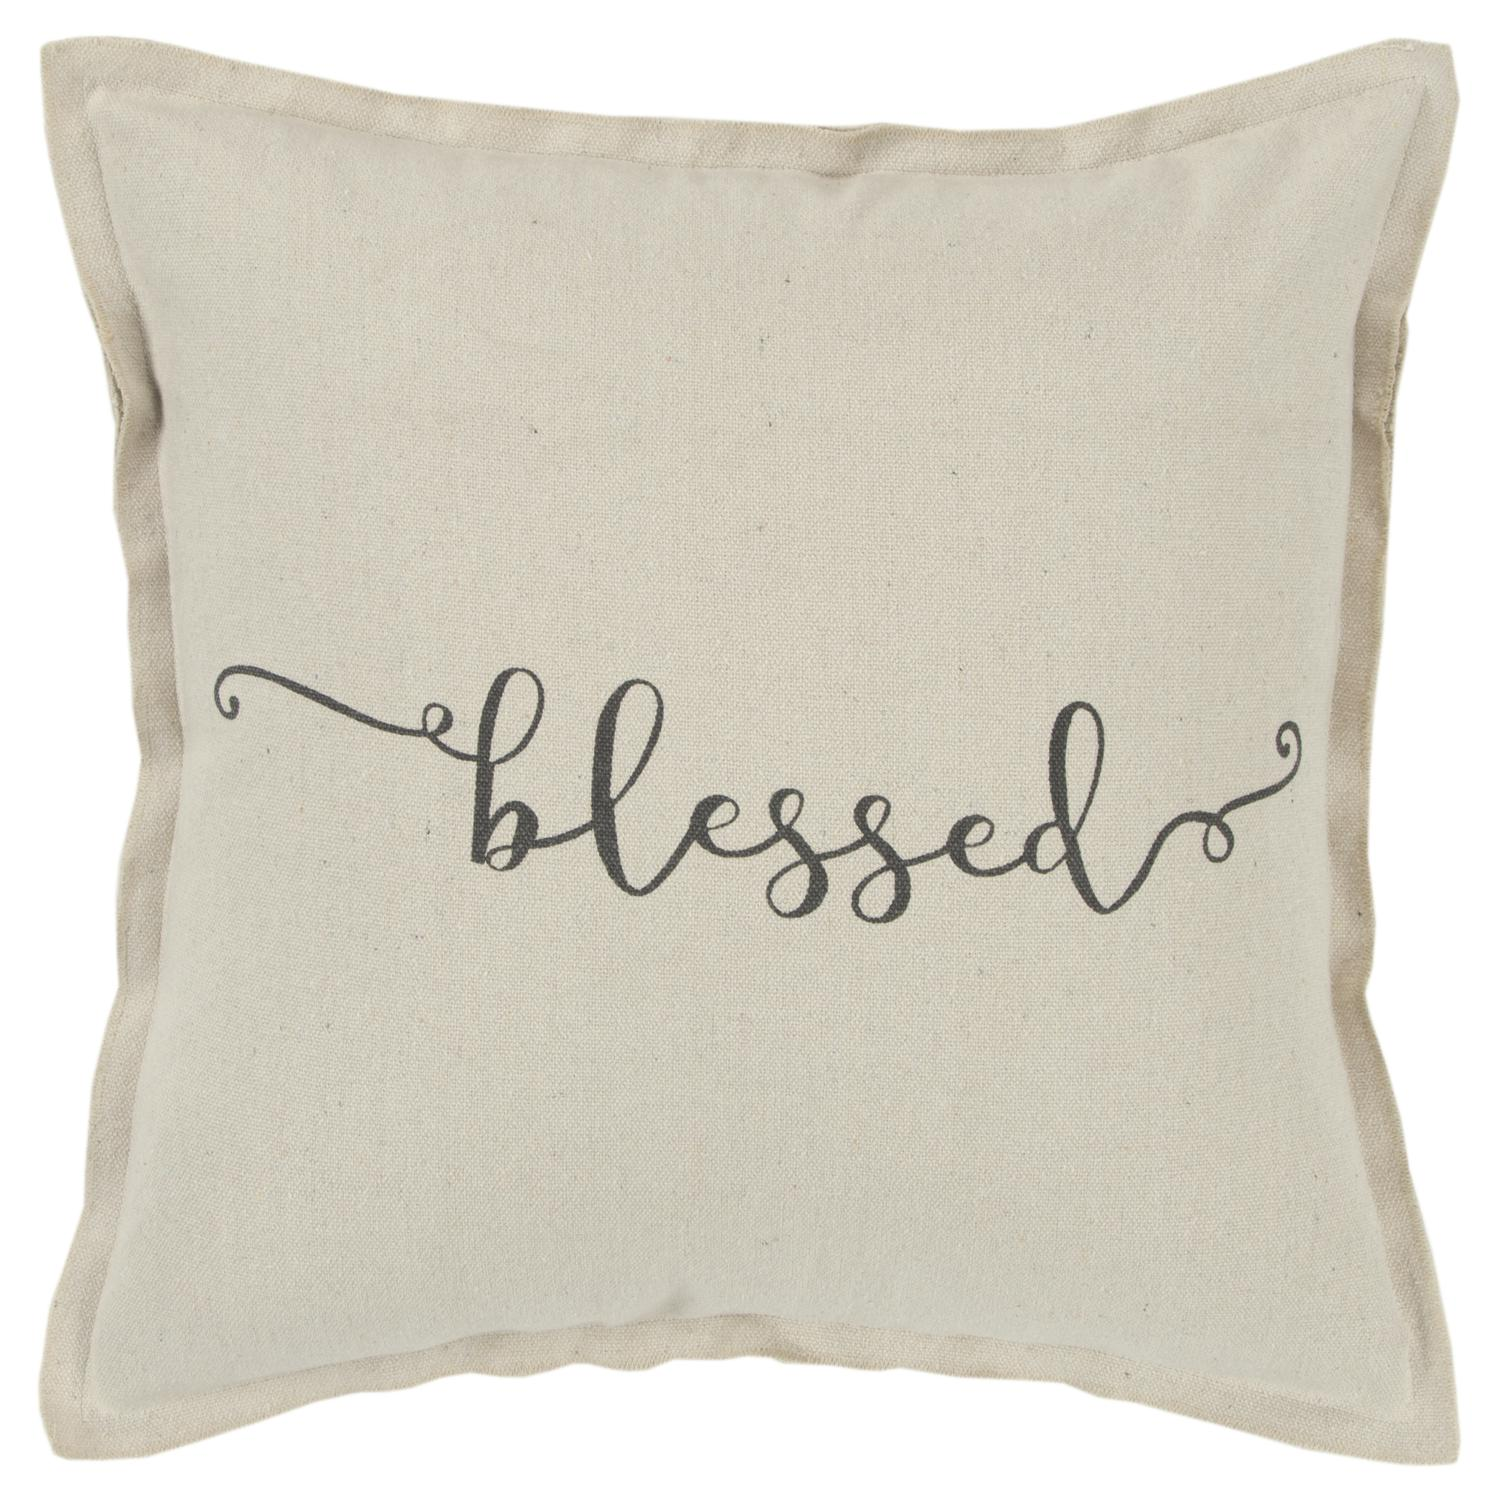 "Rizzy Home Holiday ""Blessed"" Poly Filled Decorative Throw Pillow, 20"" x 20"", Natural"